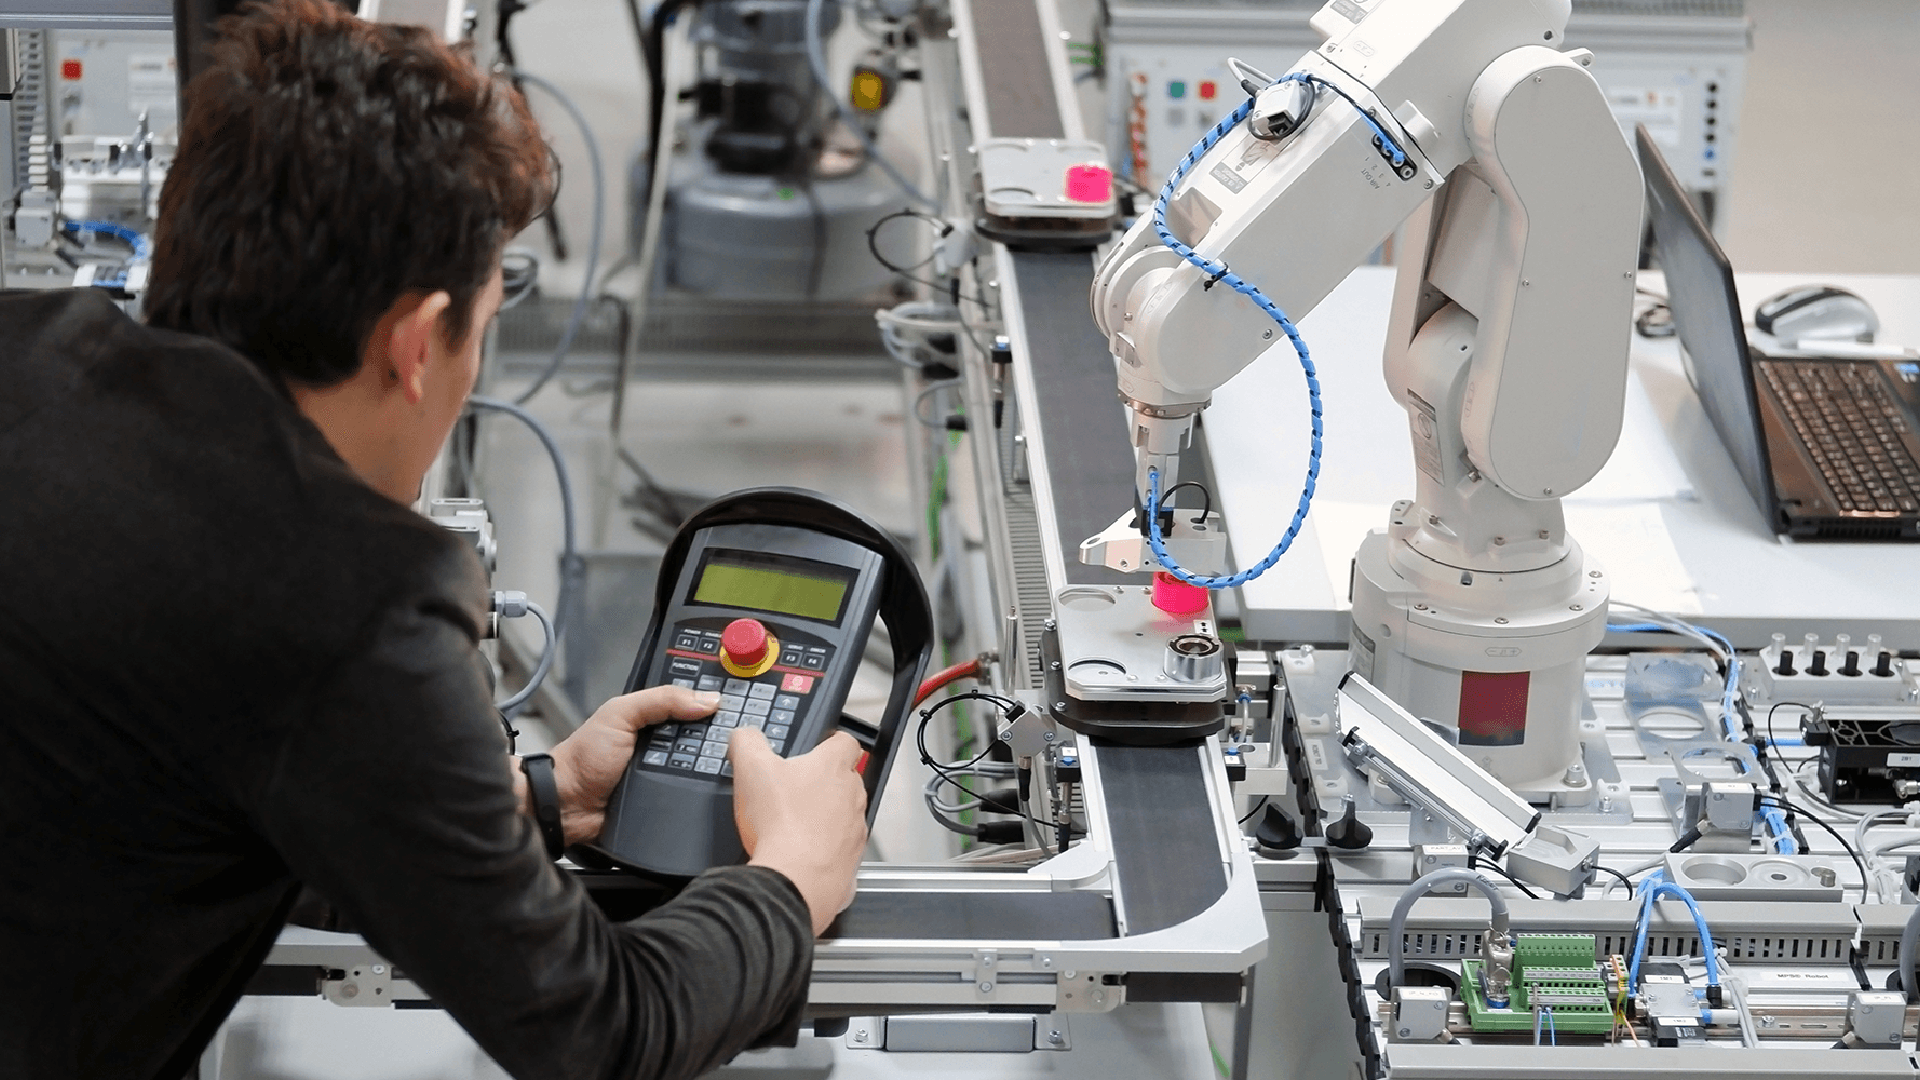 Go Modular: Taking Automation to New Places on the Factory Floor